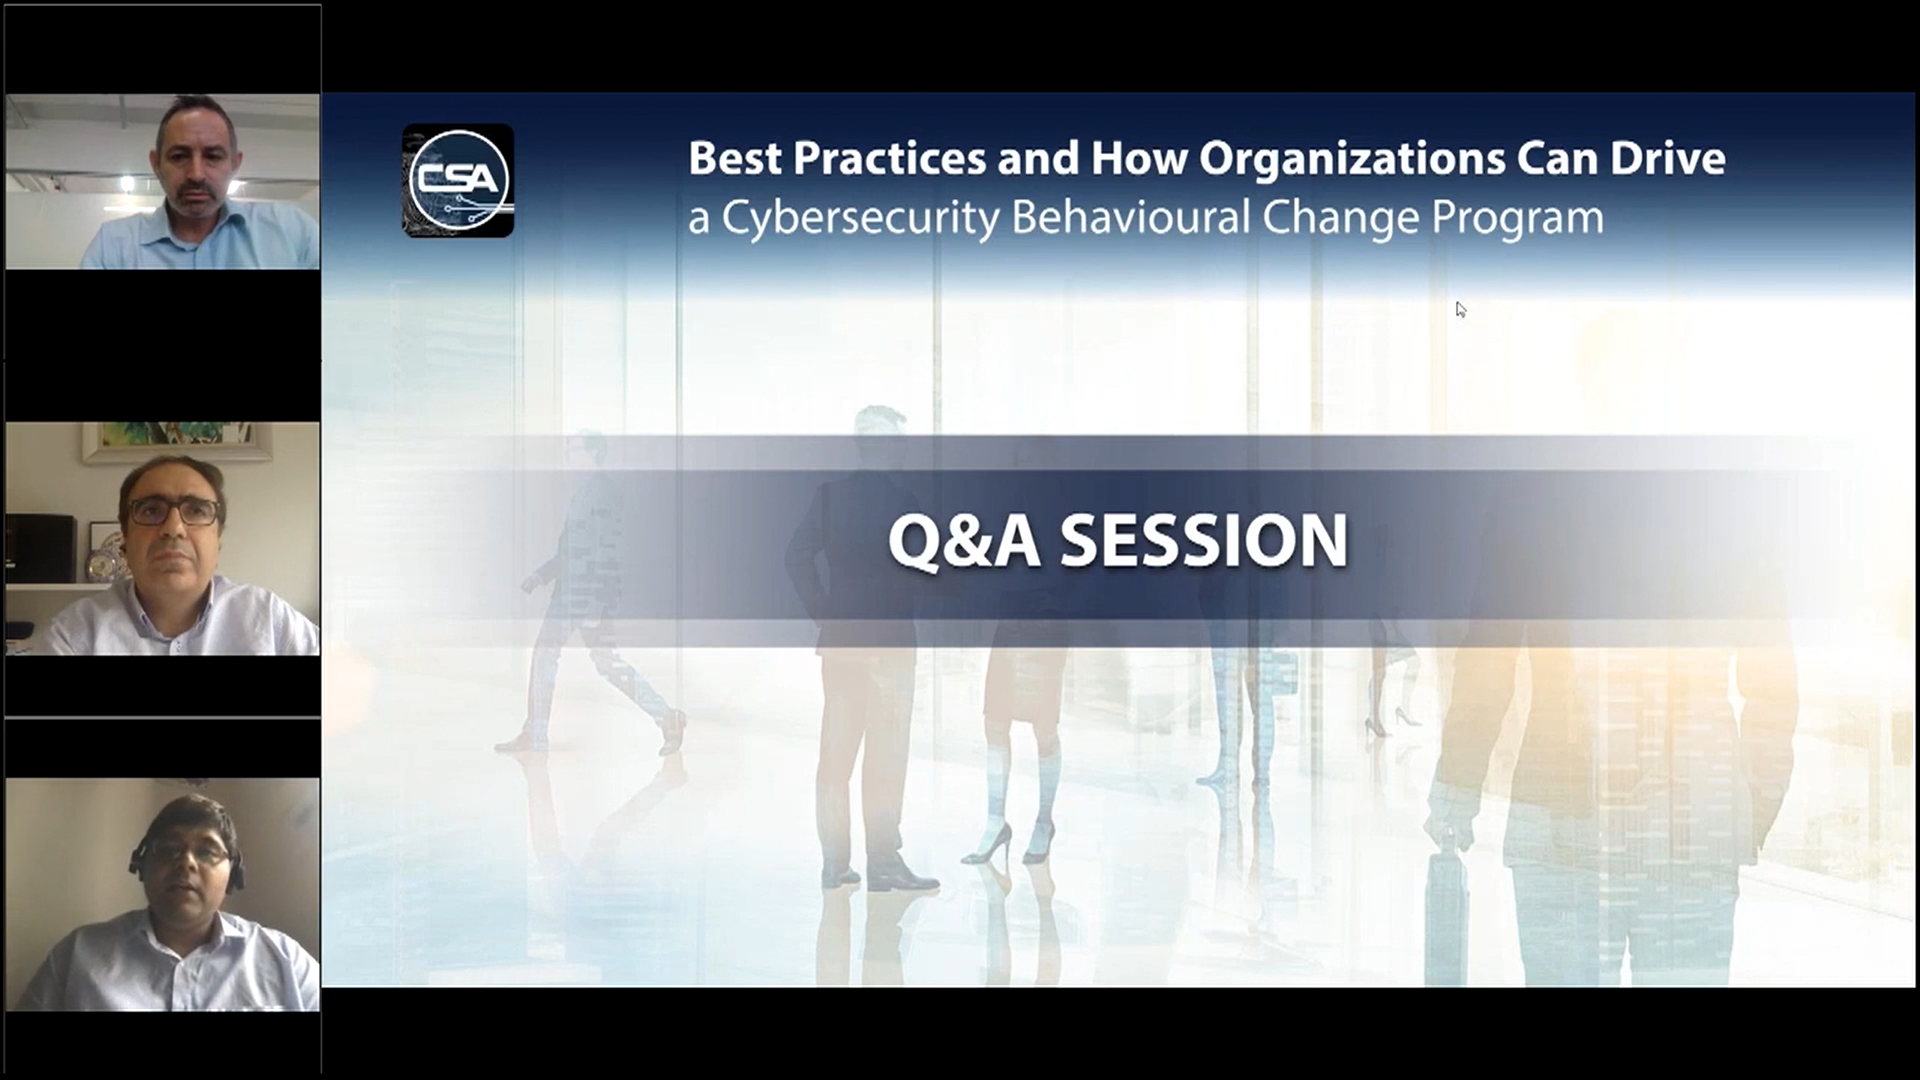 IBM Security Webinar - Best Practices & How Organizations Can Drive a Cybersecurity Behavioural Change Program. - ATTENDANCE .